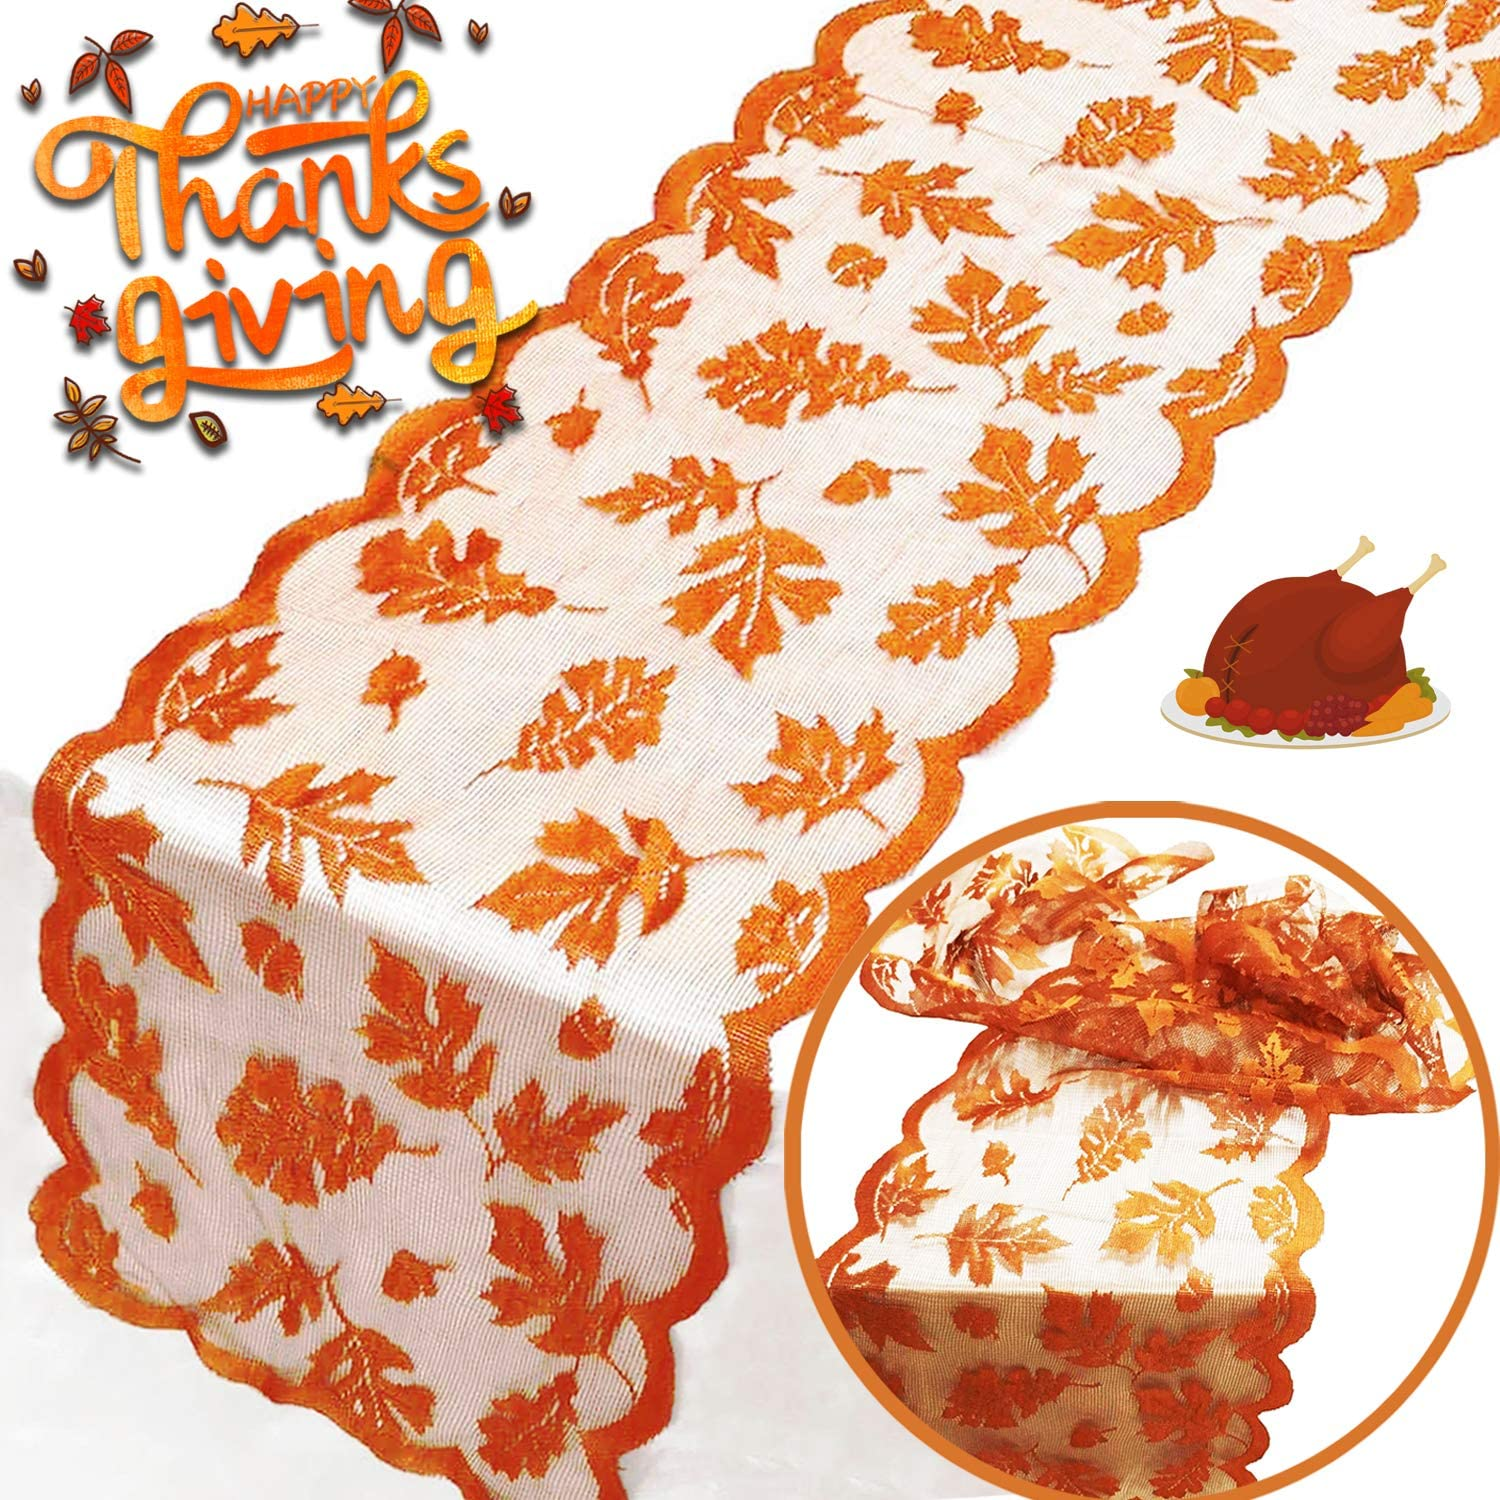 ????Fall Table Runner Thanksgiving Decorations, Maple Leaf Lace Table Runner for Thanksgiving Dinner Party Pumpkin Autumn Runner Harvest Table Decorations Autumn Home Indoor Seasonal Decor(13x72 Inch)